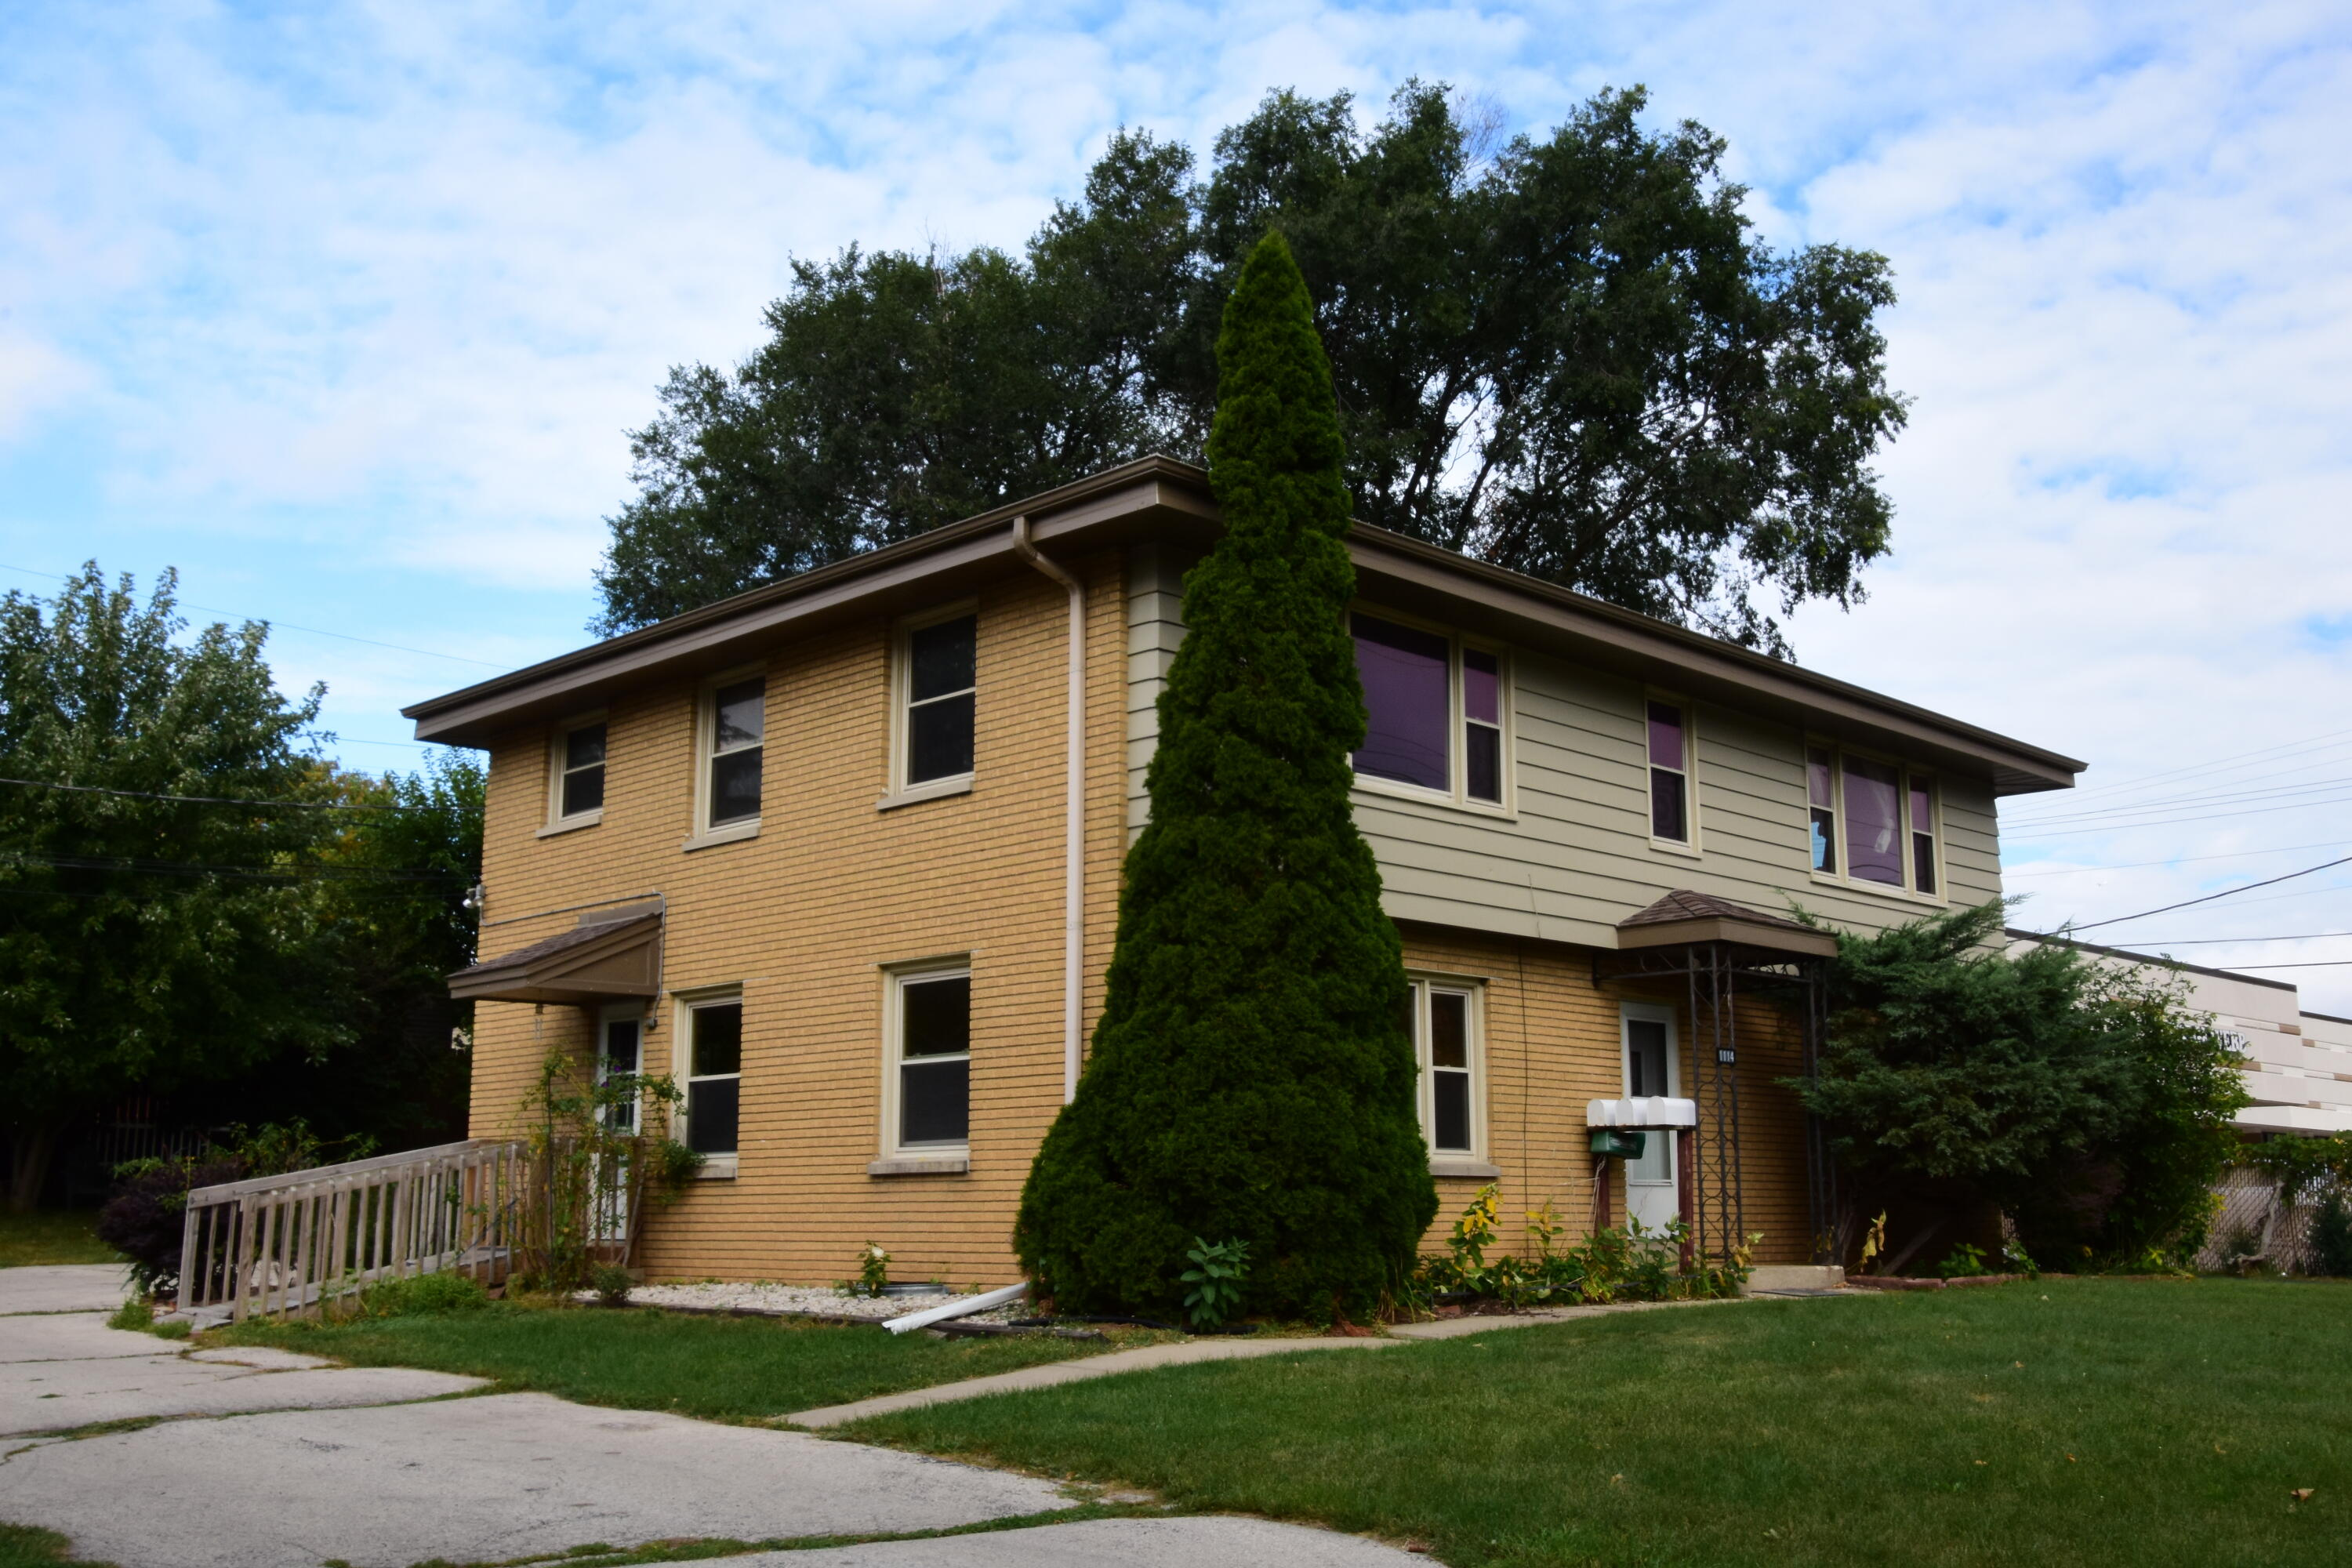 1114 Delafield St, Waukesha, Wisconsin 53188, ,Multi-Family Investment,For Sale,Delafield St,1764434